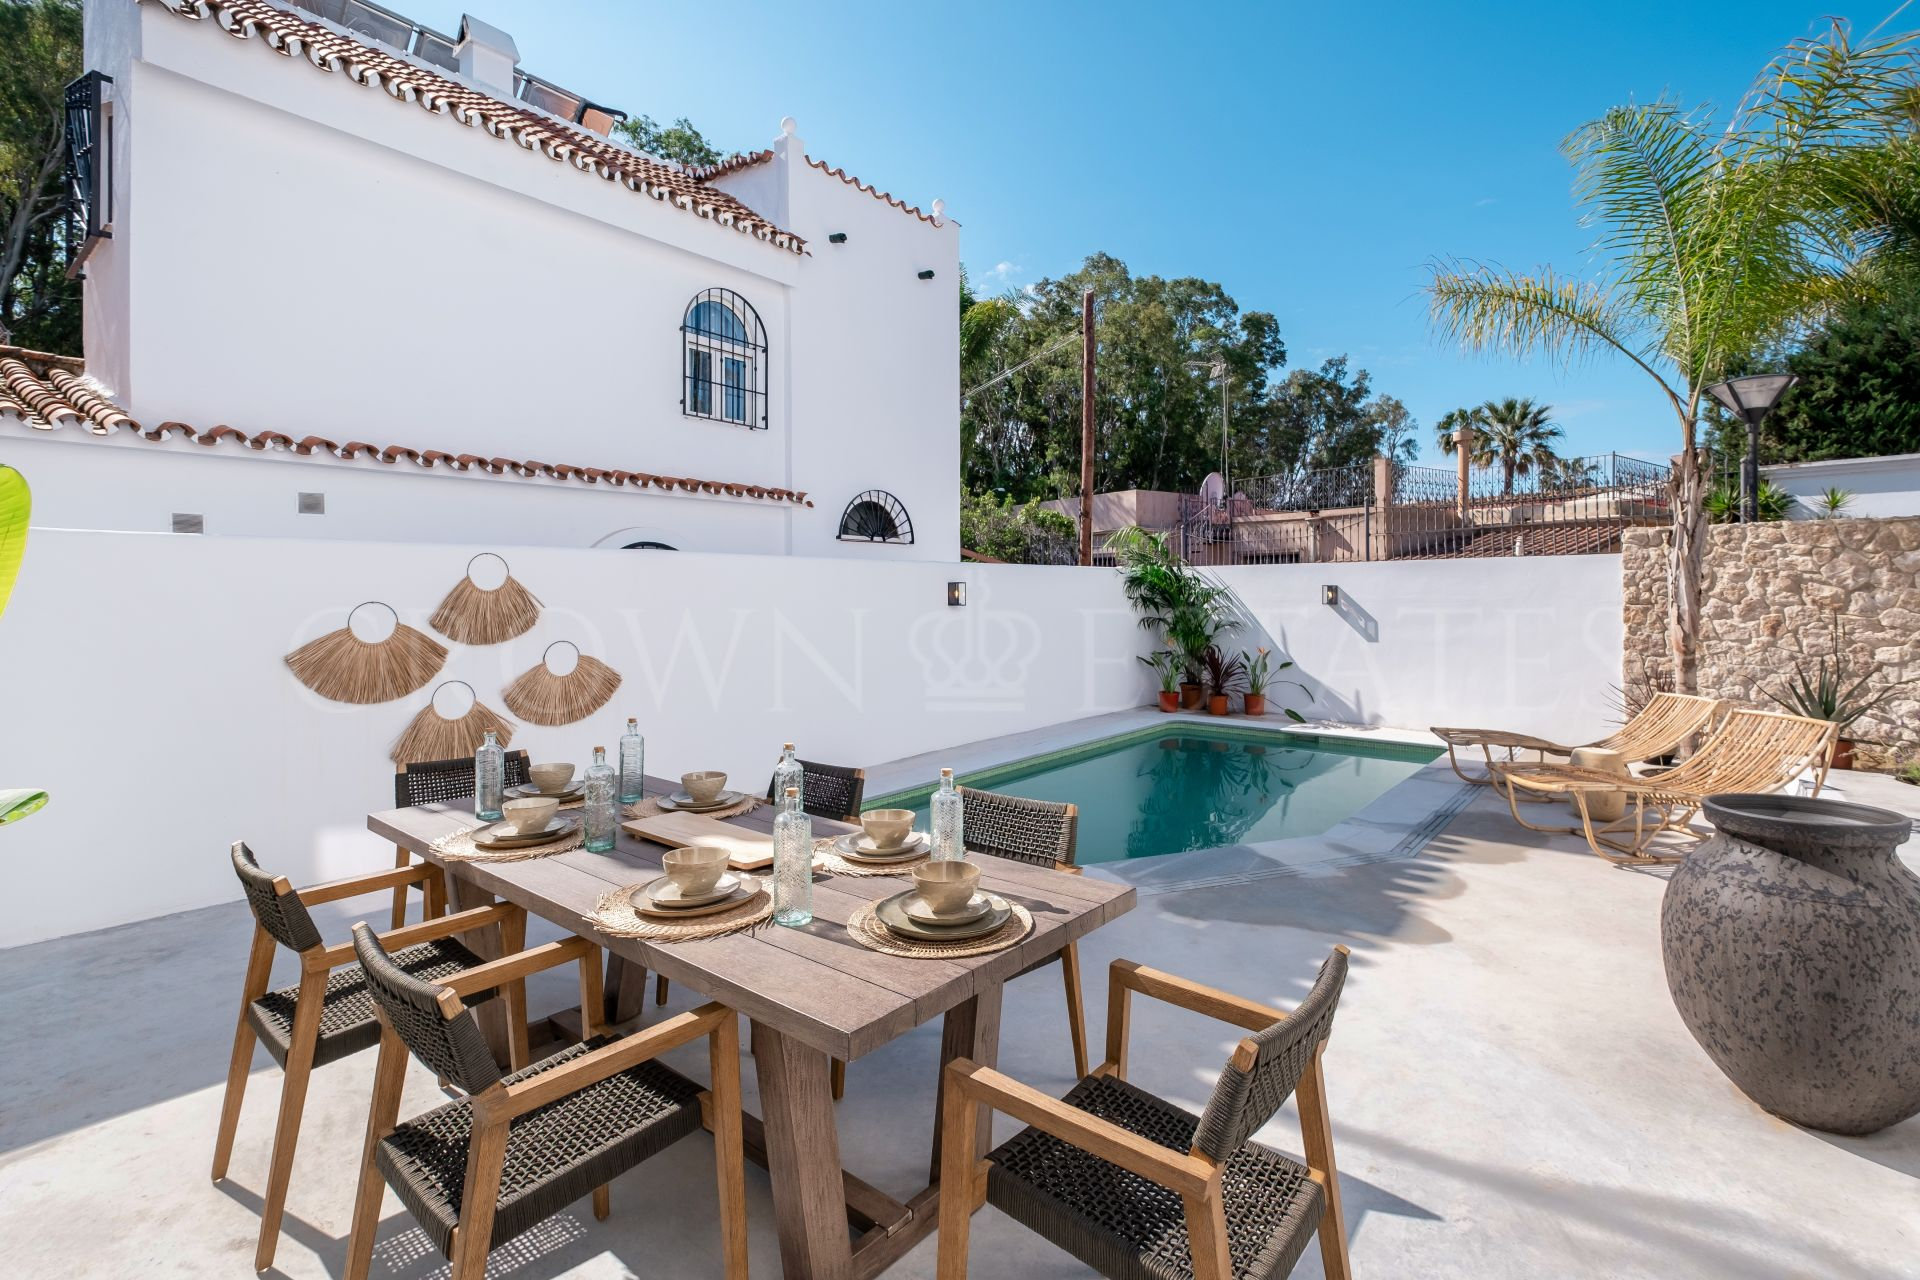 Semi-detached Villa - 4 Bedrooms - 3 Bathrooms - 152m² built - 41m² terraces Renovated villa a few steps from the sea with a relaxed boho feeling to it